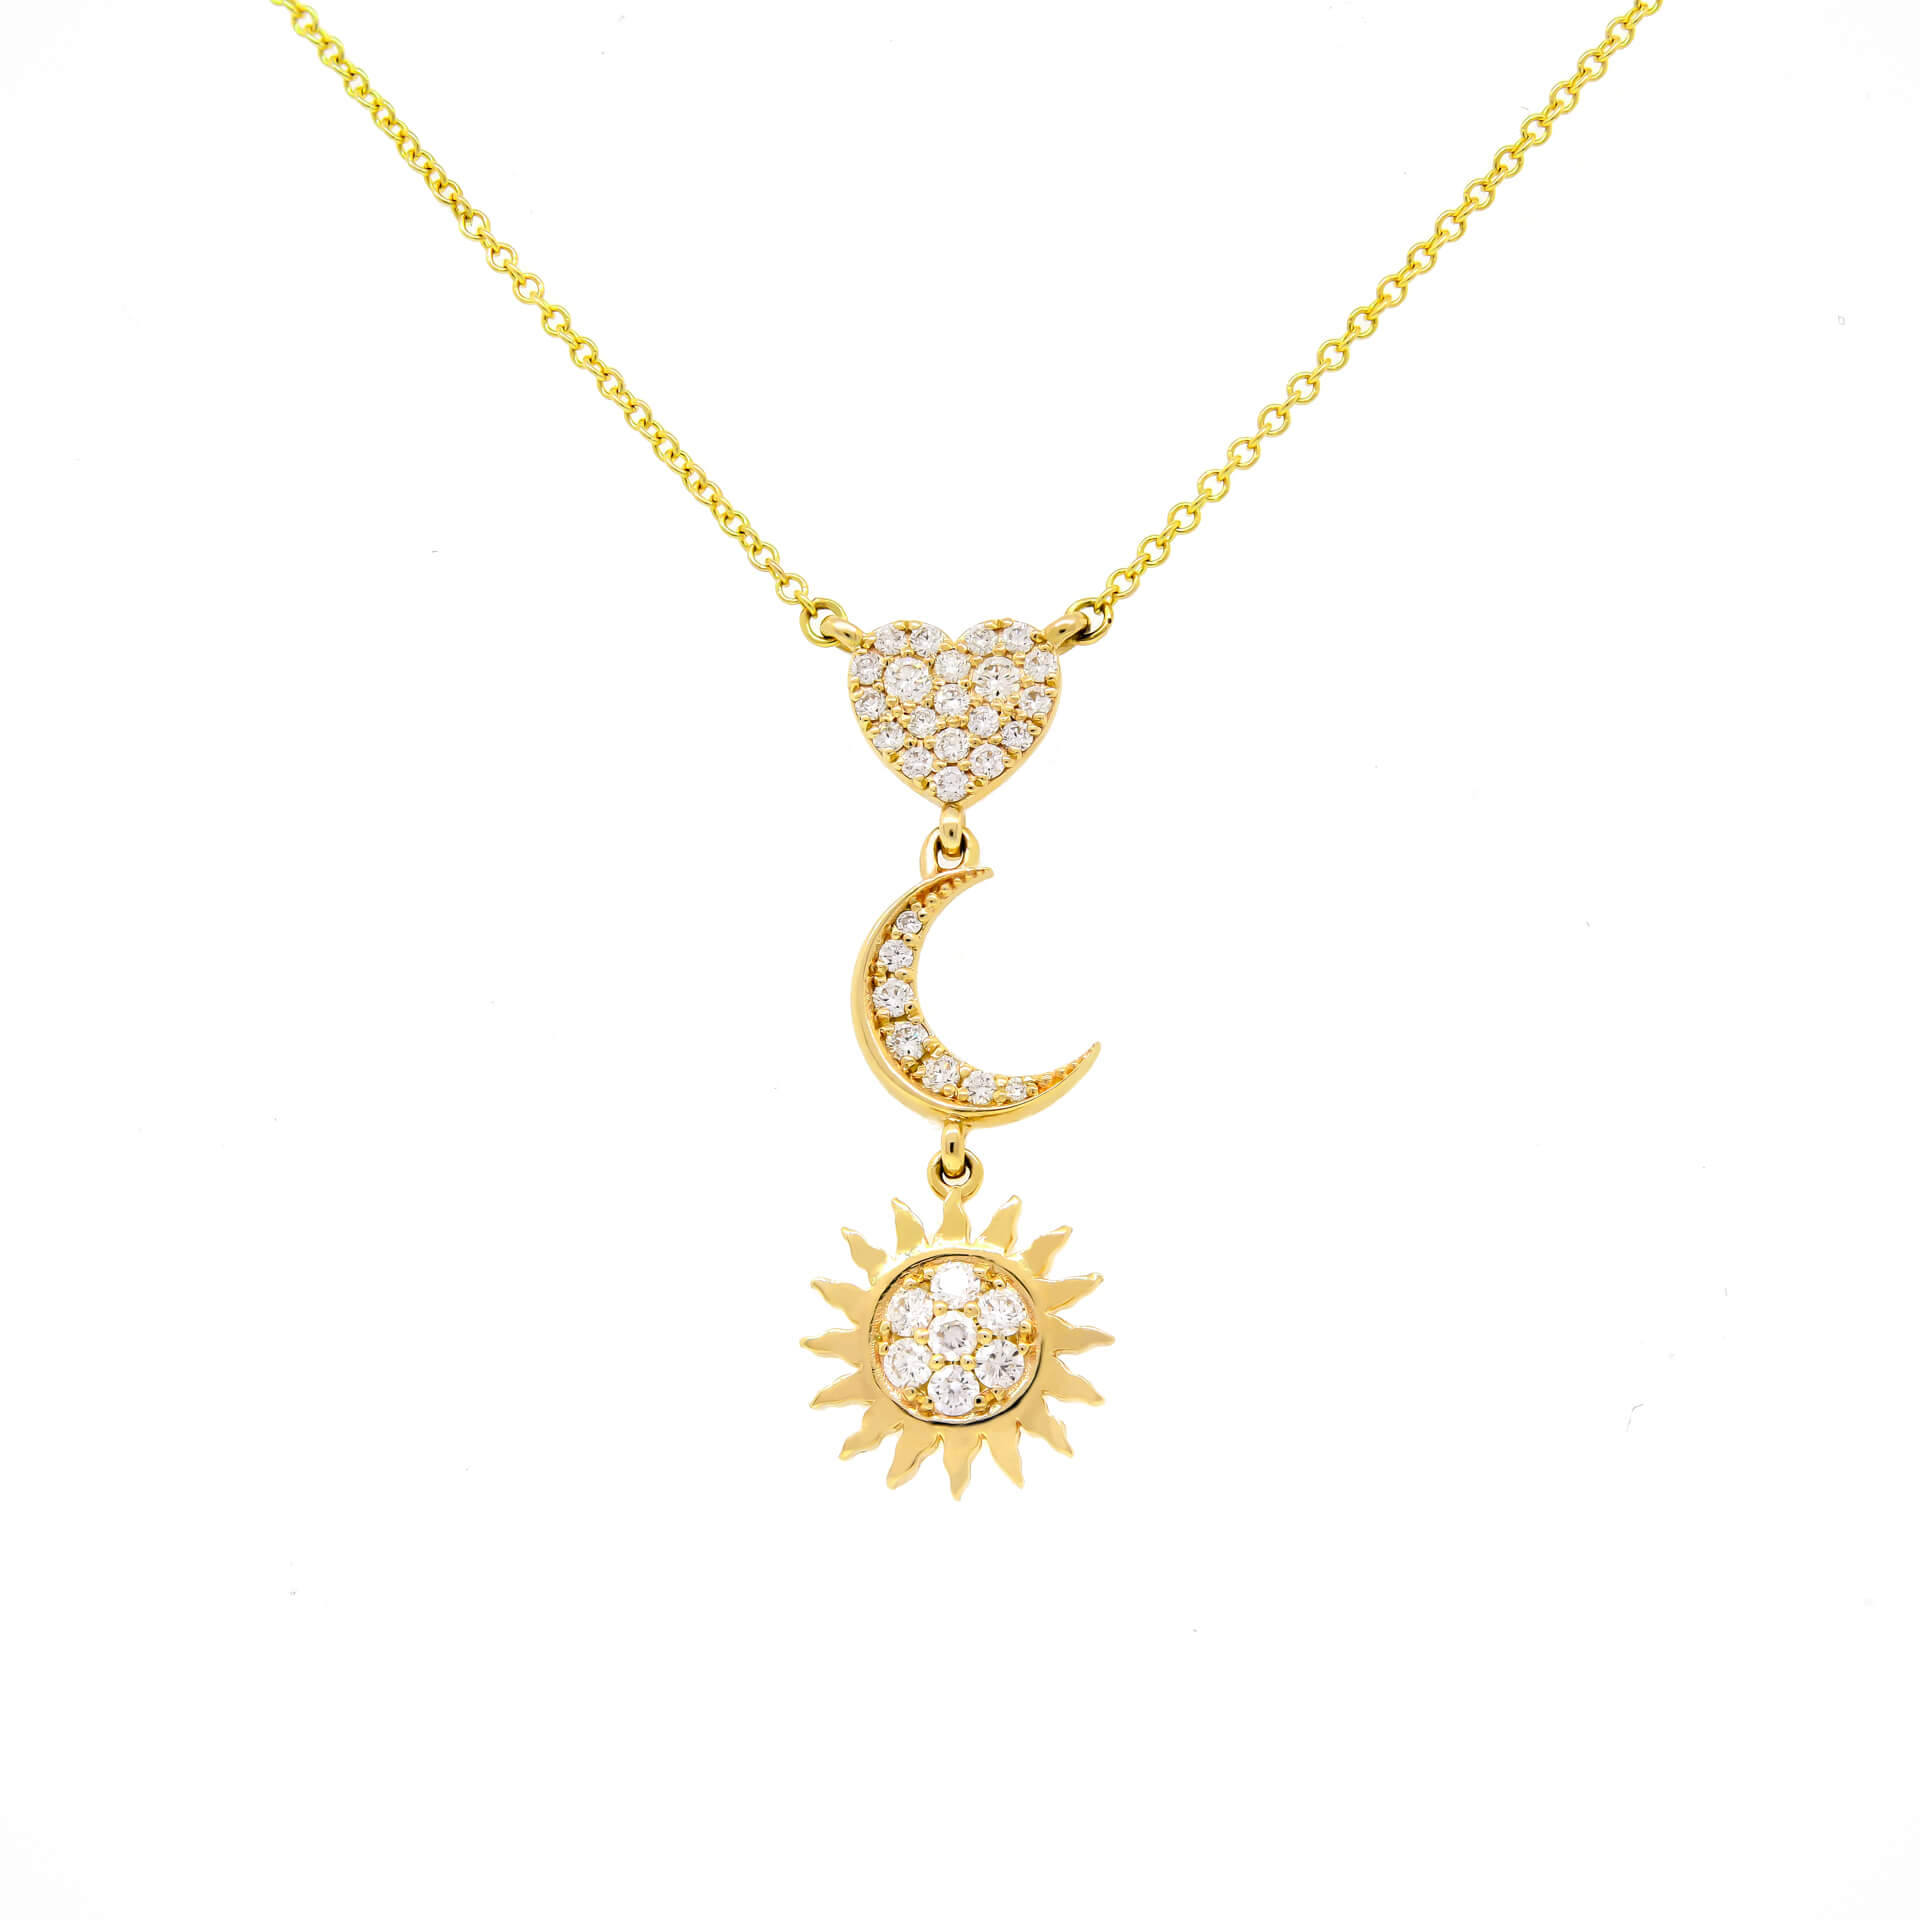 Yellow Gold Sun and Moon Necklace